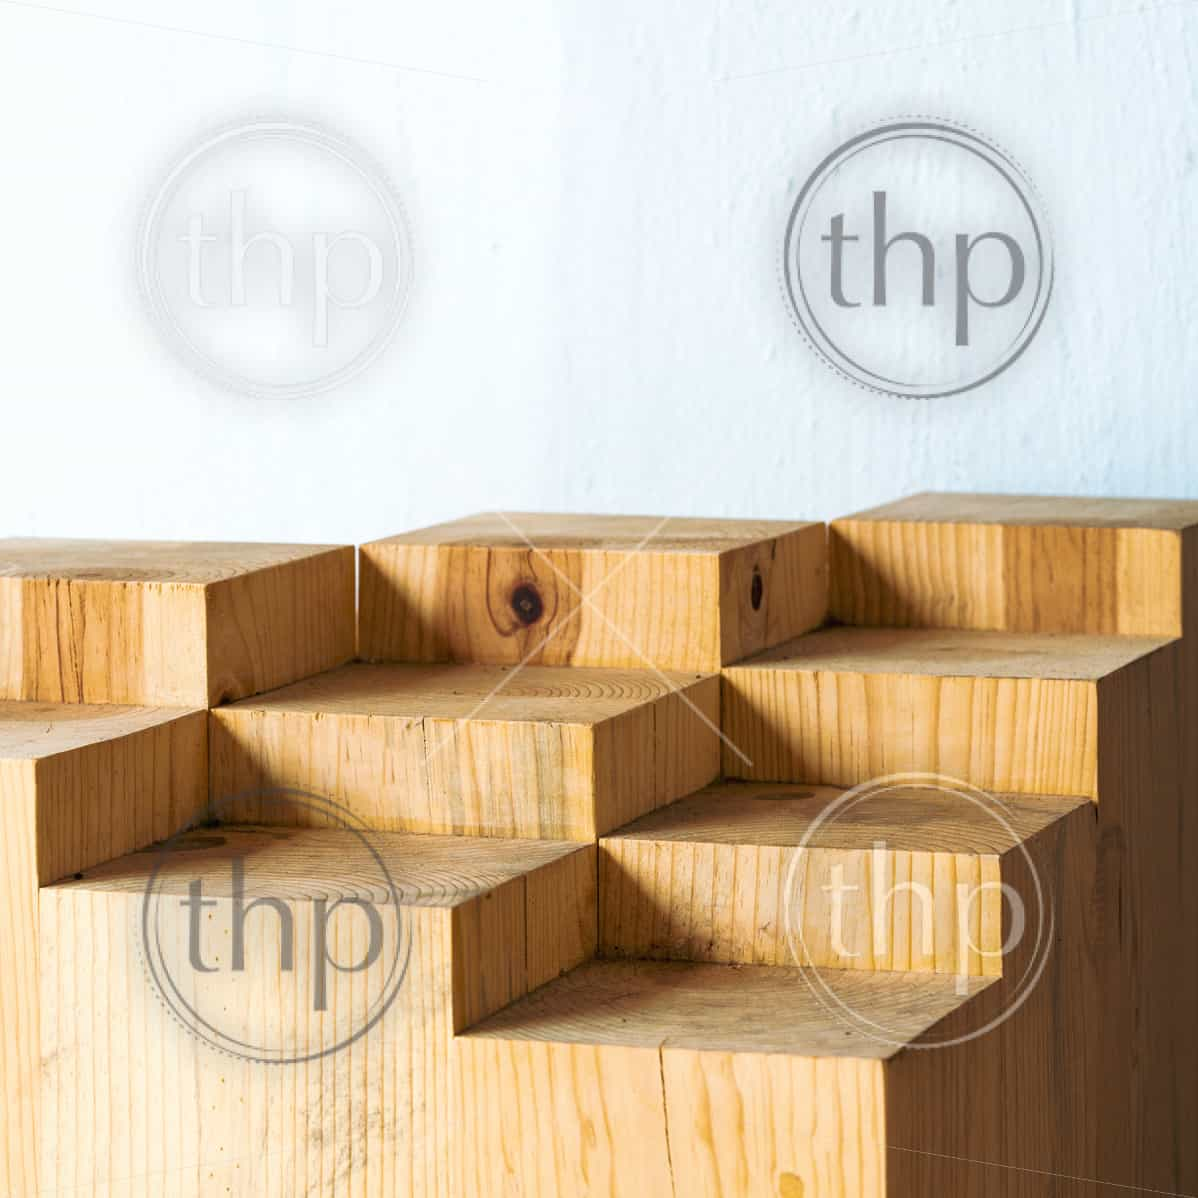 Geometric shapes in abstract blocks of wood with copy space